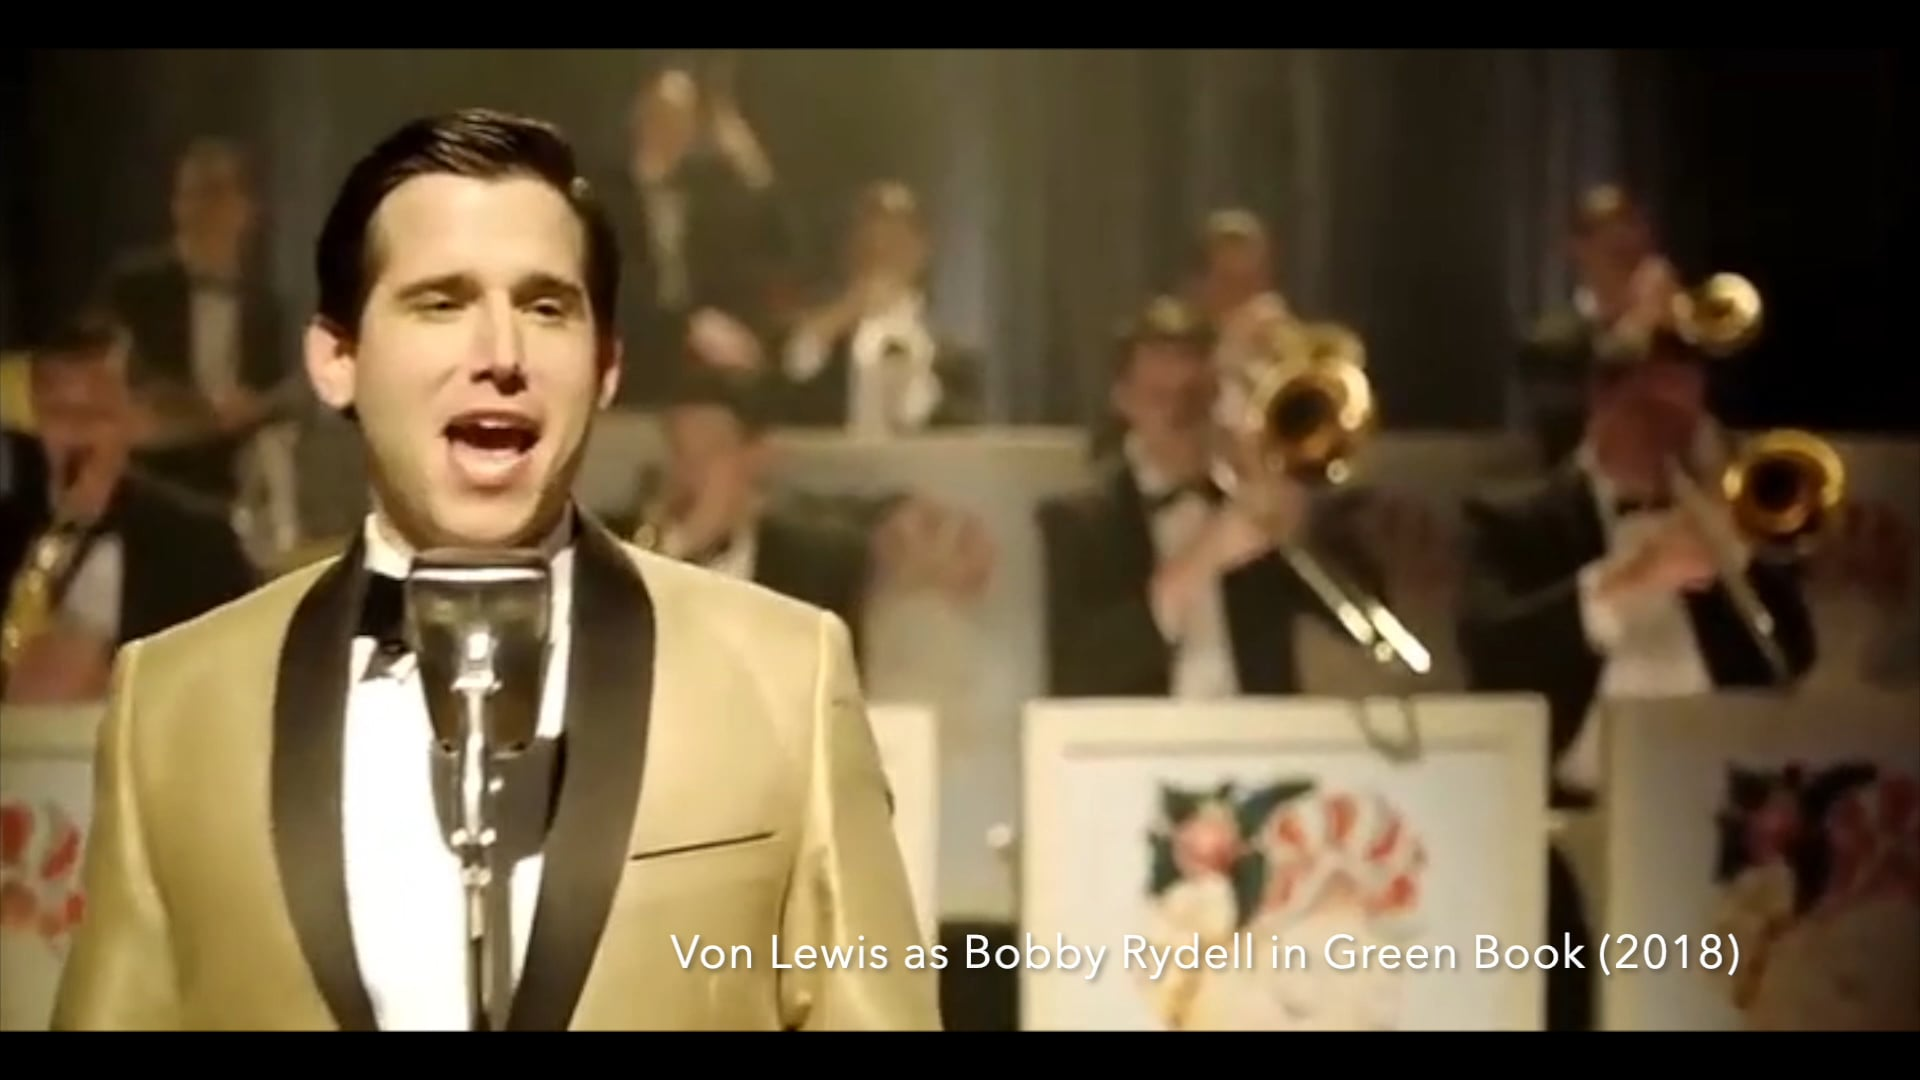 Von Lewis as Bobby Rydell in Green Book (Film) Segment Promo purposes only